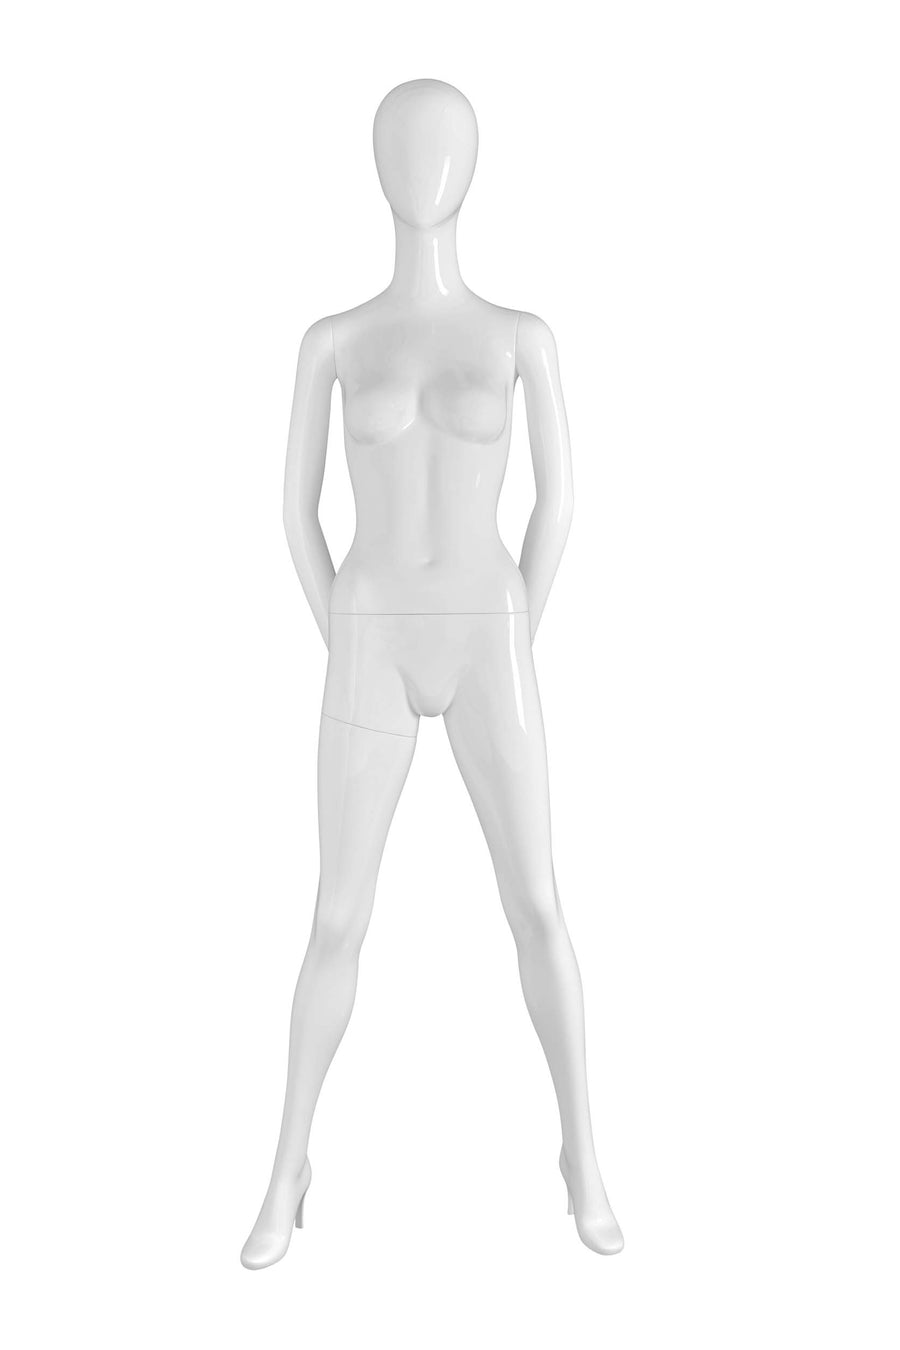 SX-Boutique Female Mannequin Pos. 06